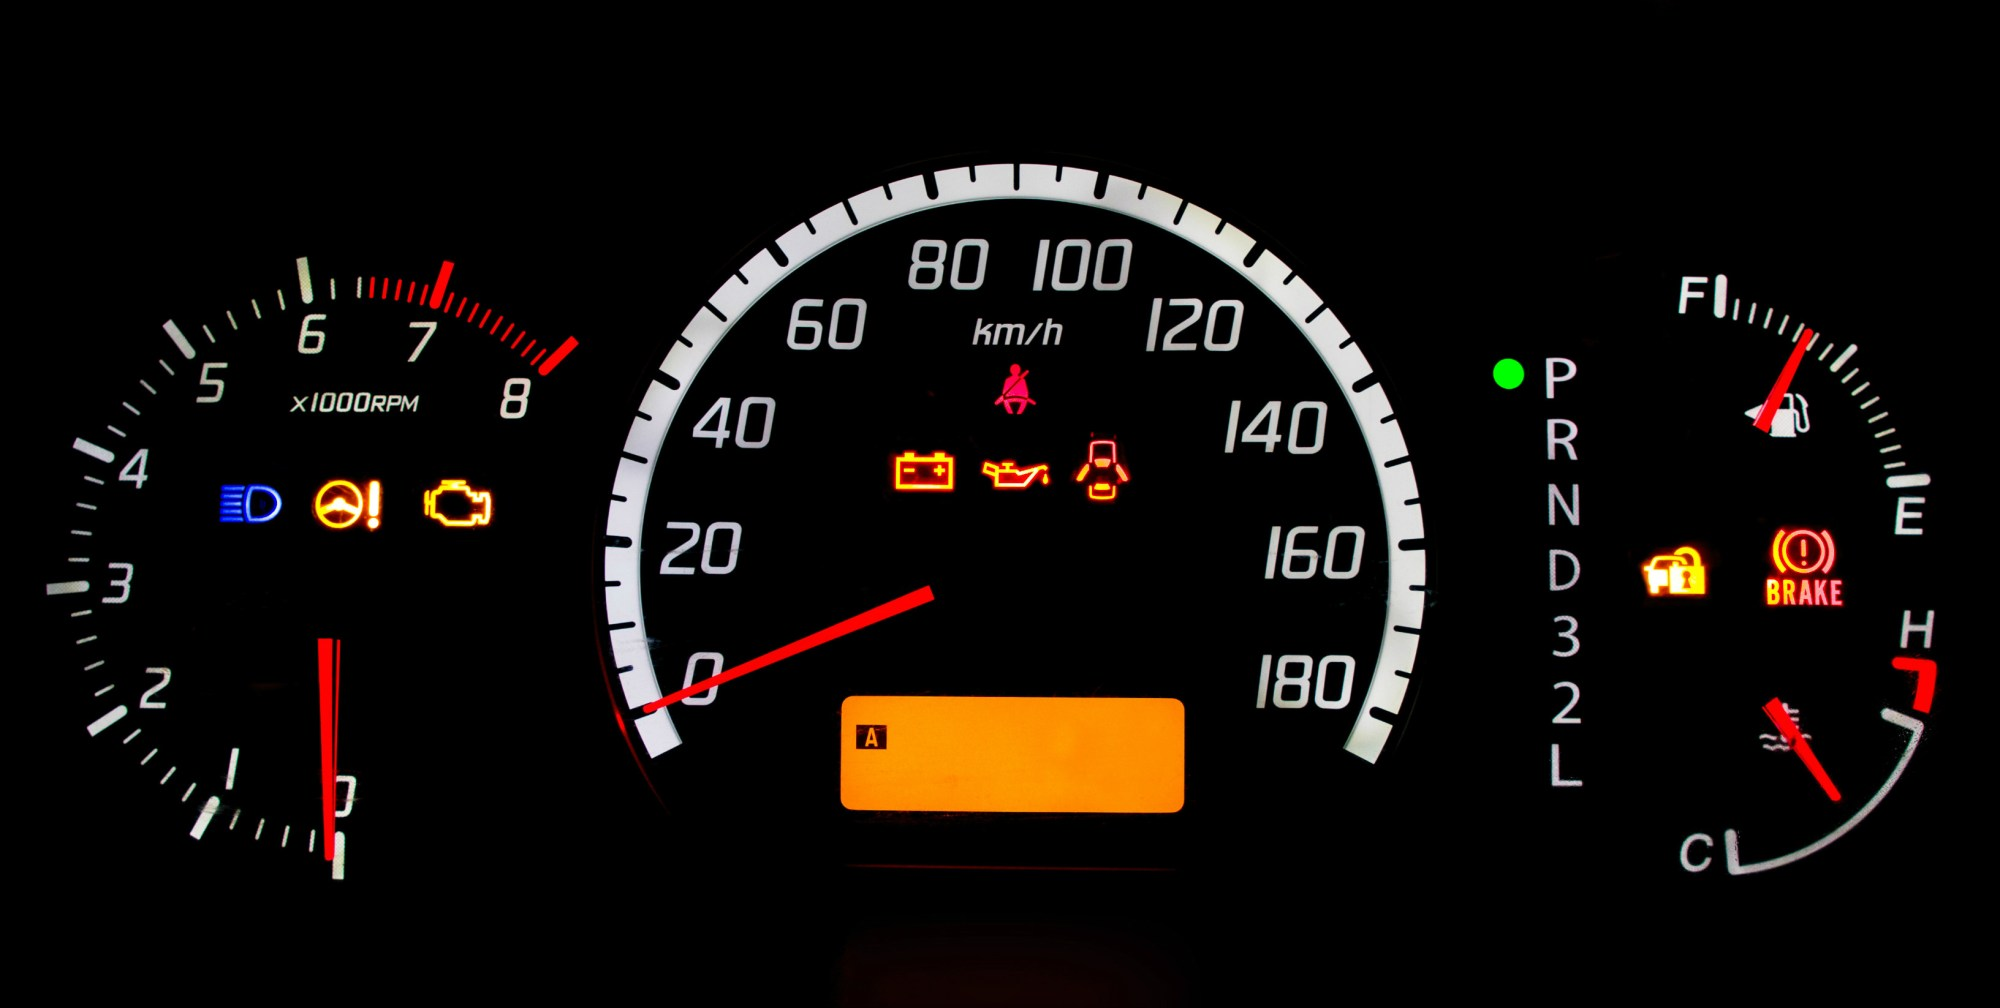 hight resolution of 2006 bmw 330i warning light